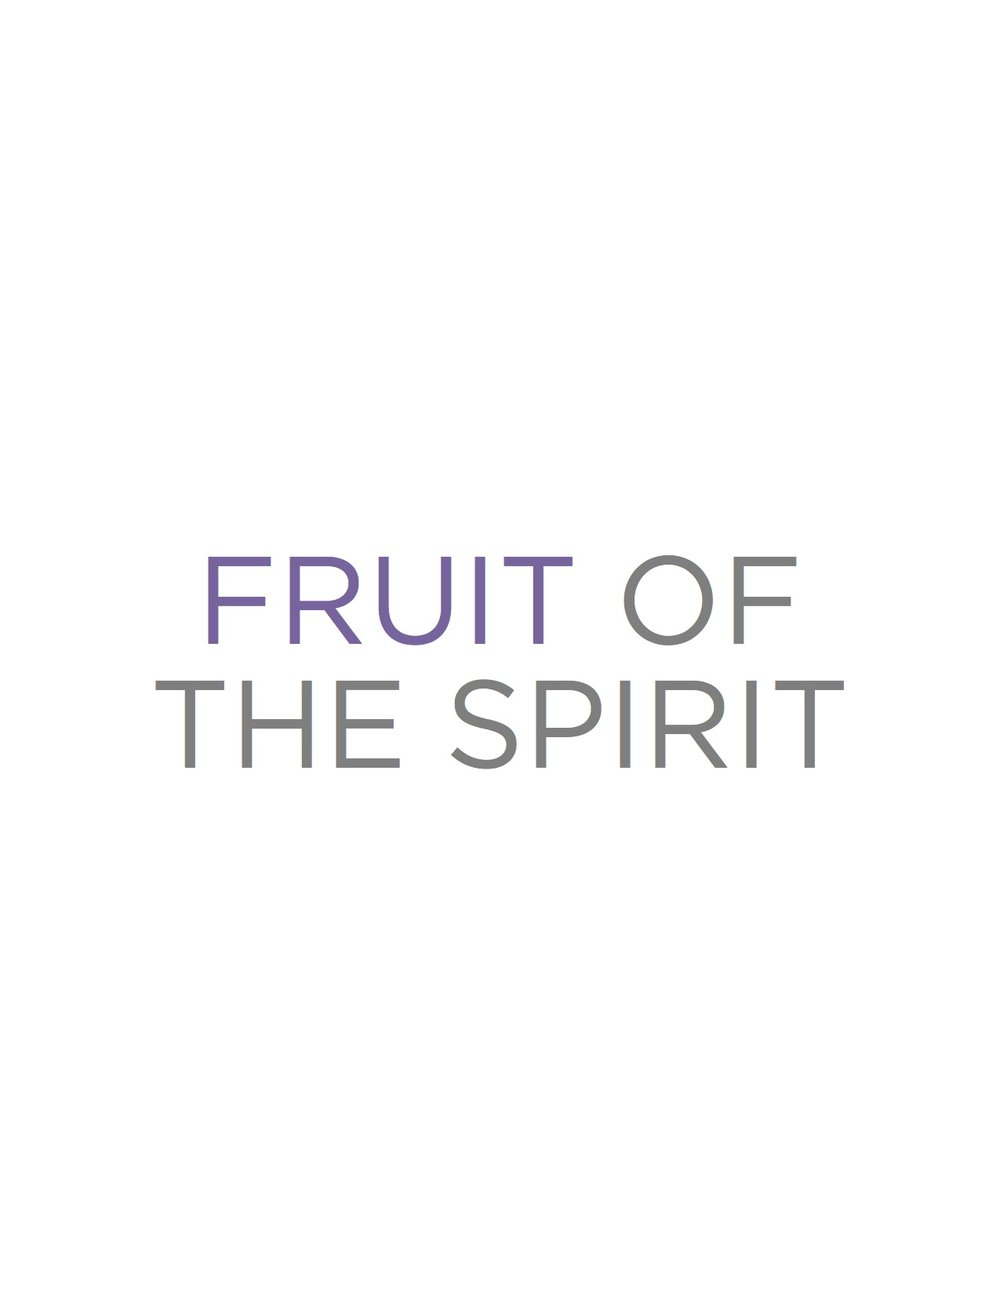 FRUIT OF THE SPIRIT.jpg